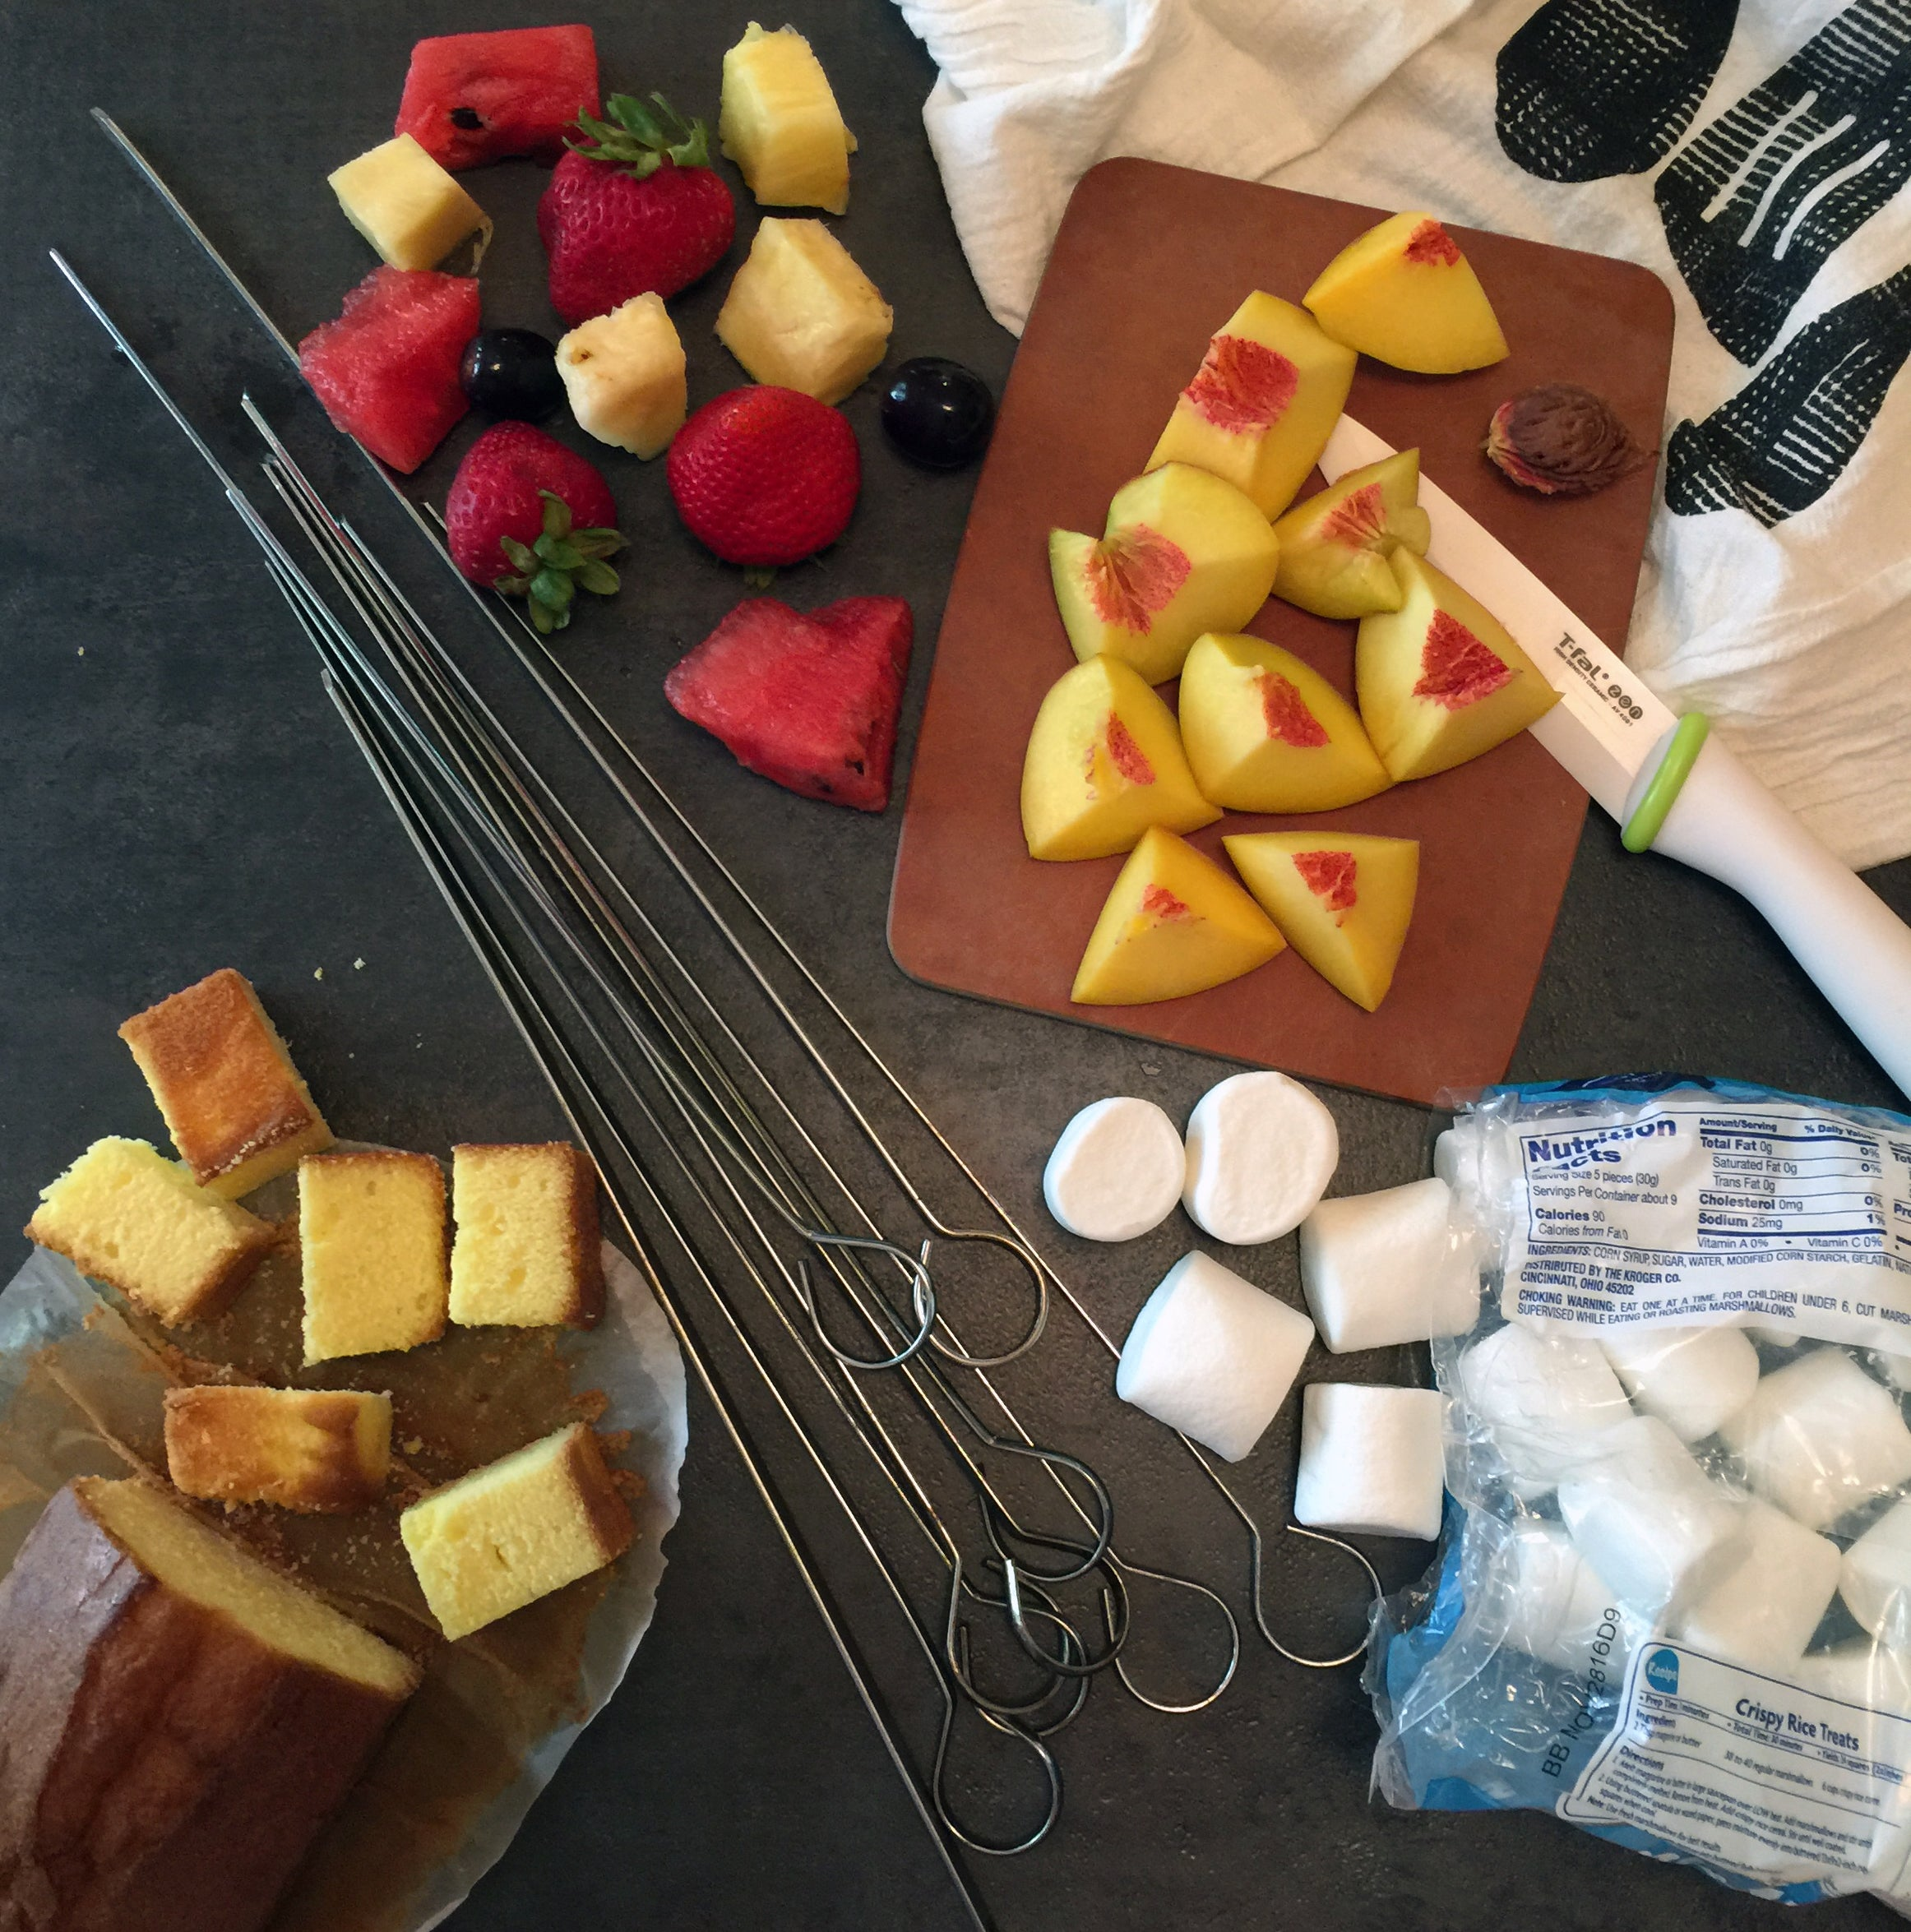 Fruit kebab ingredients to entertain kids